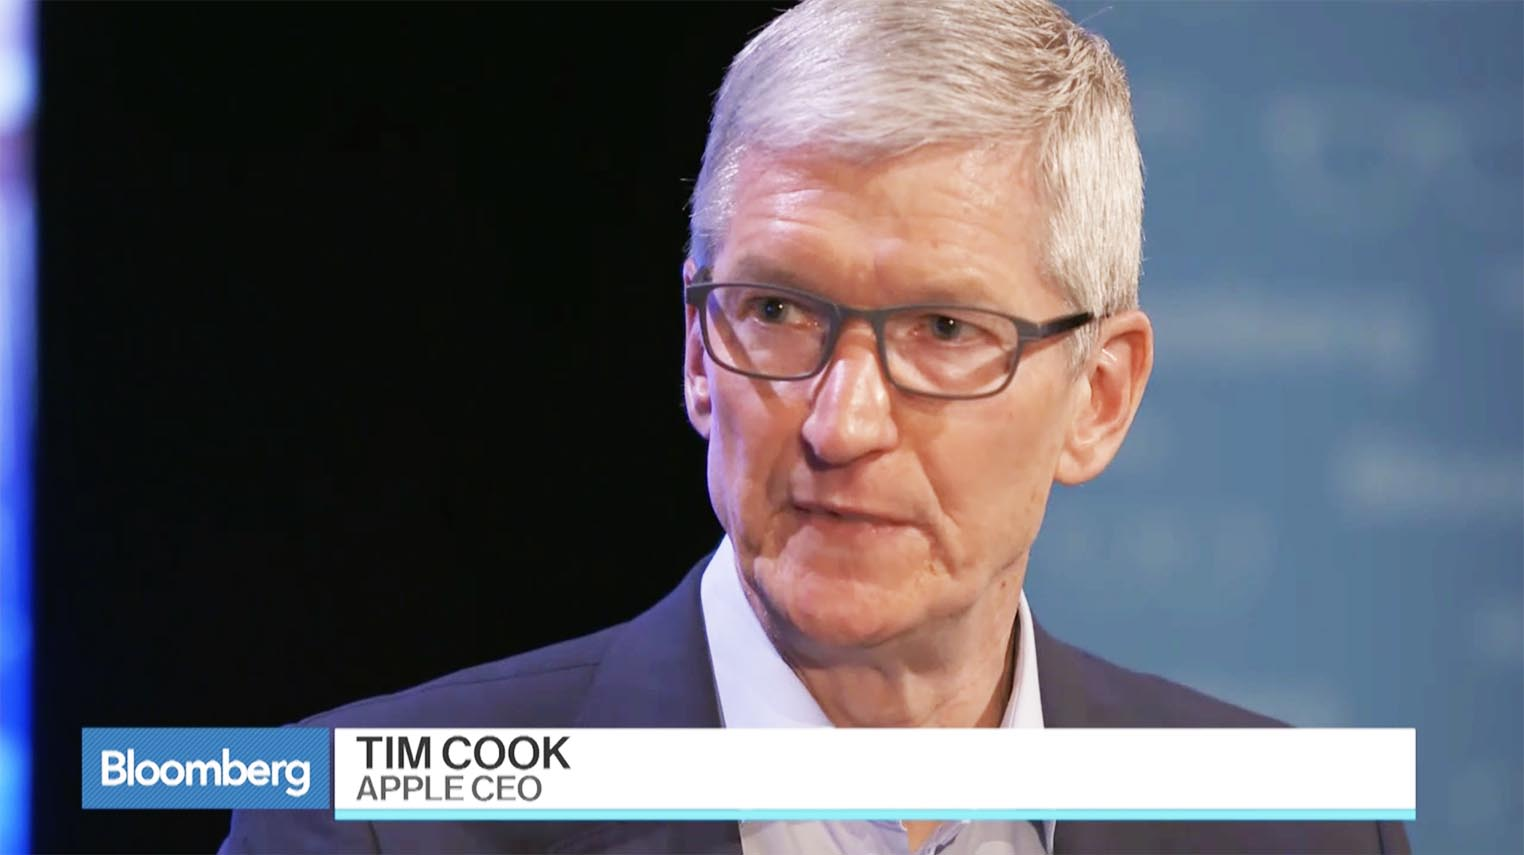 Tim Cook Bloomberg